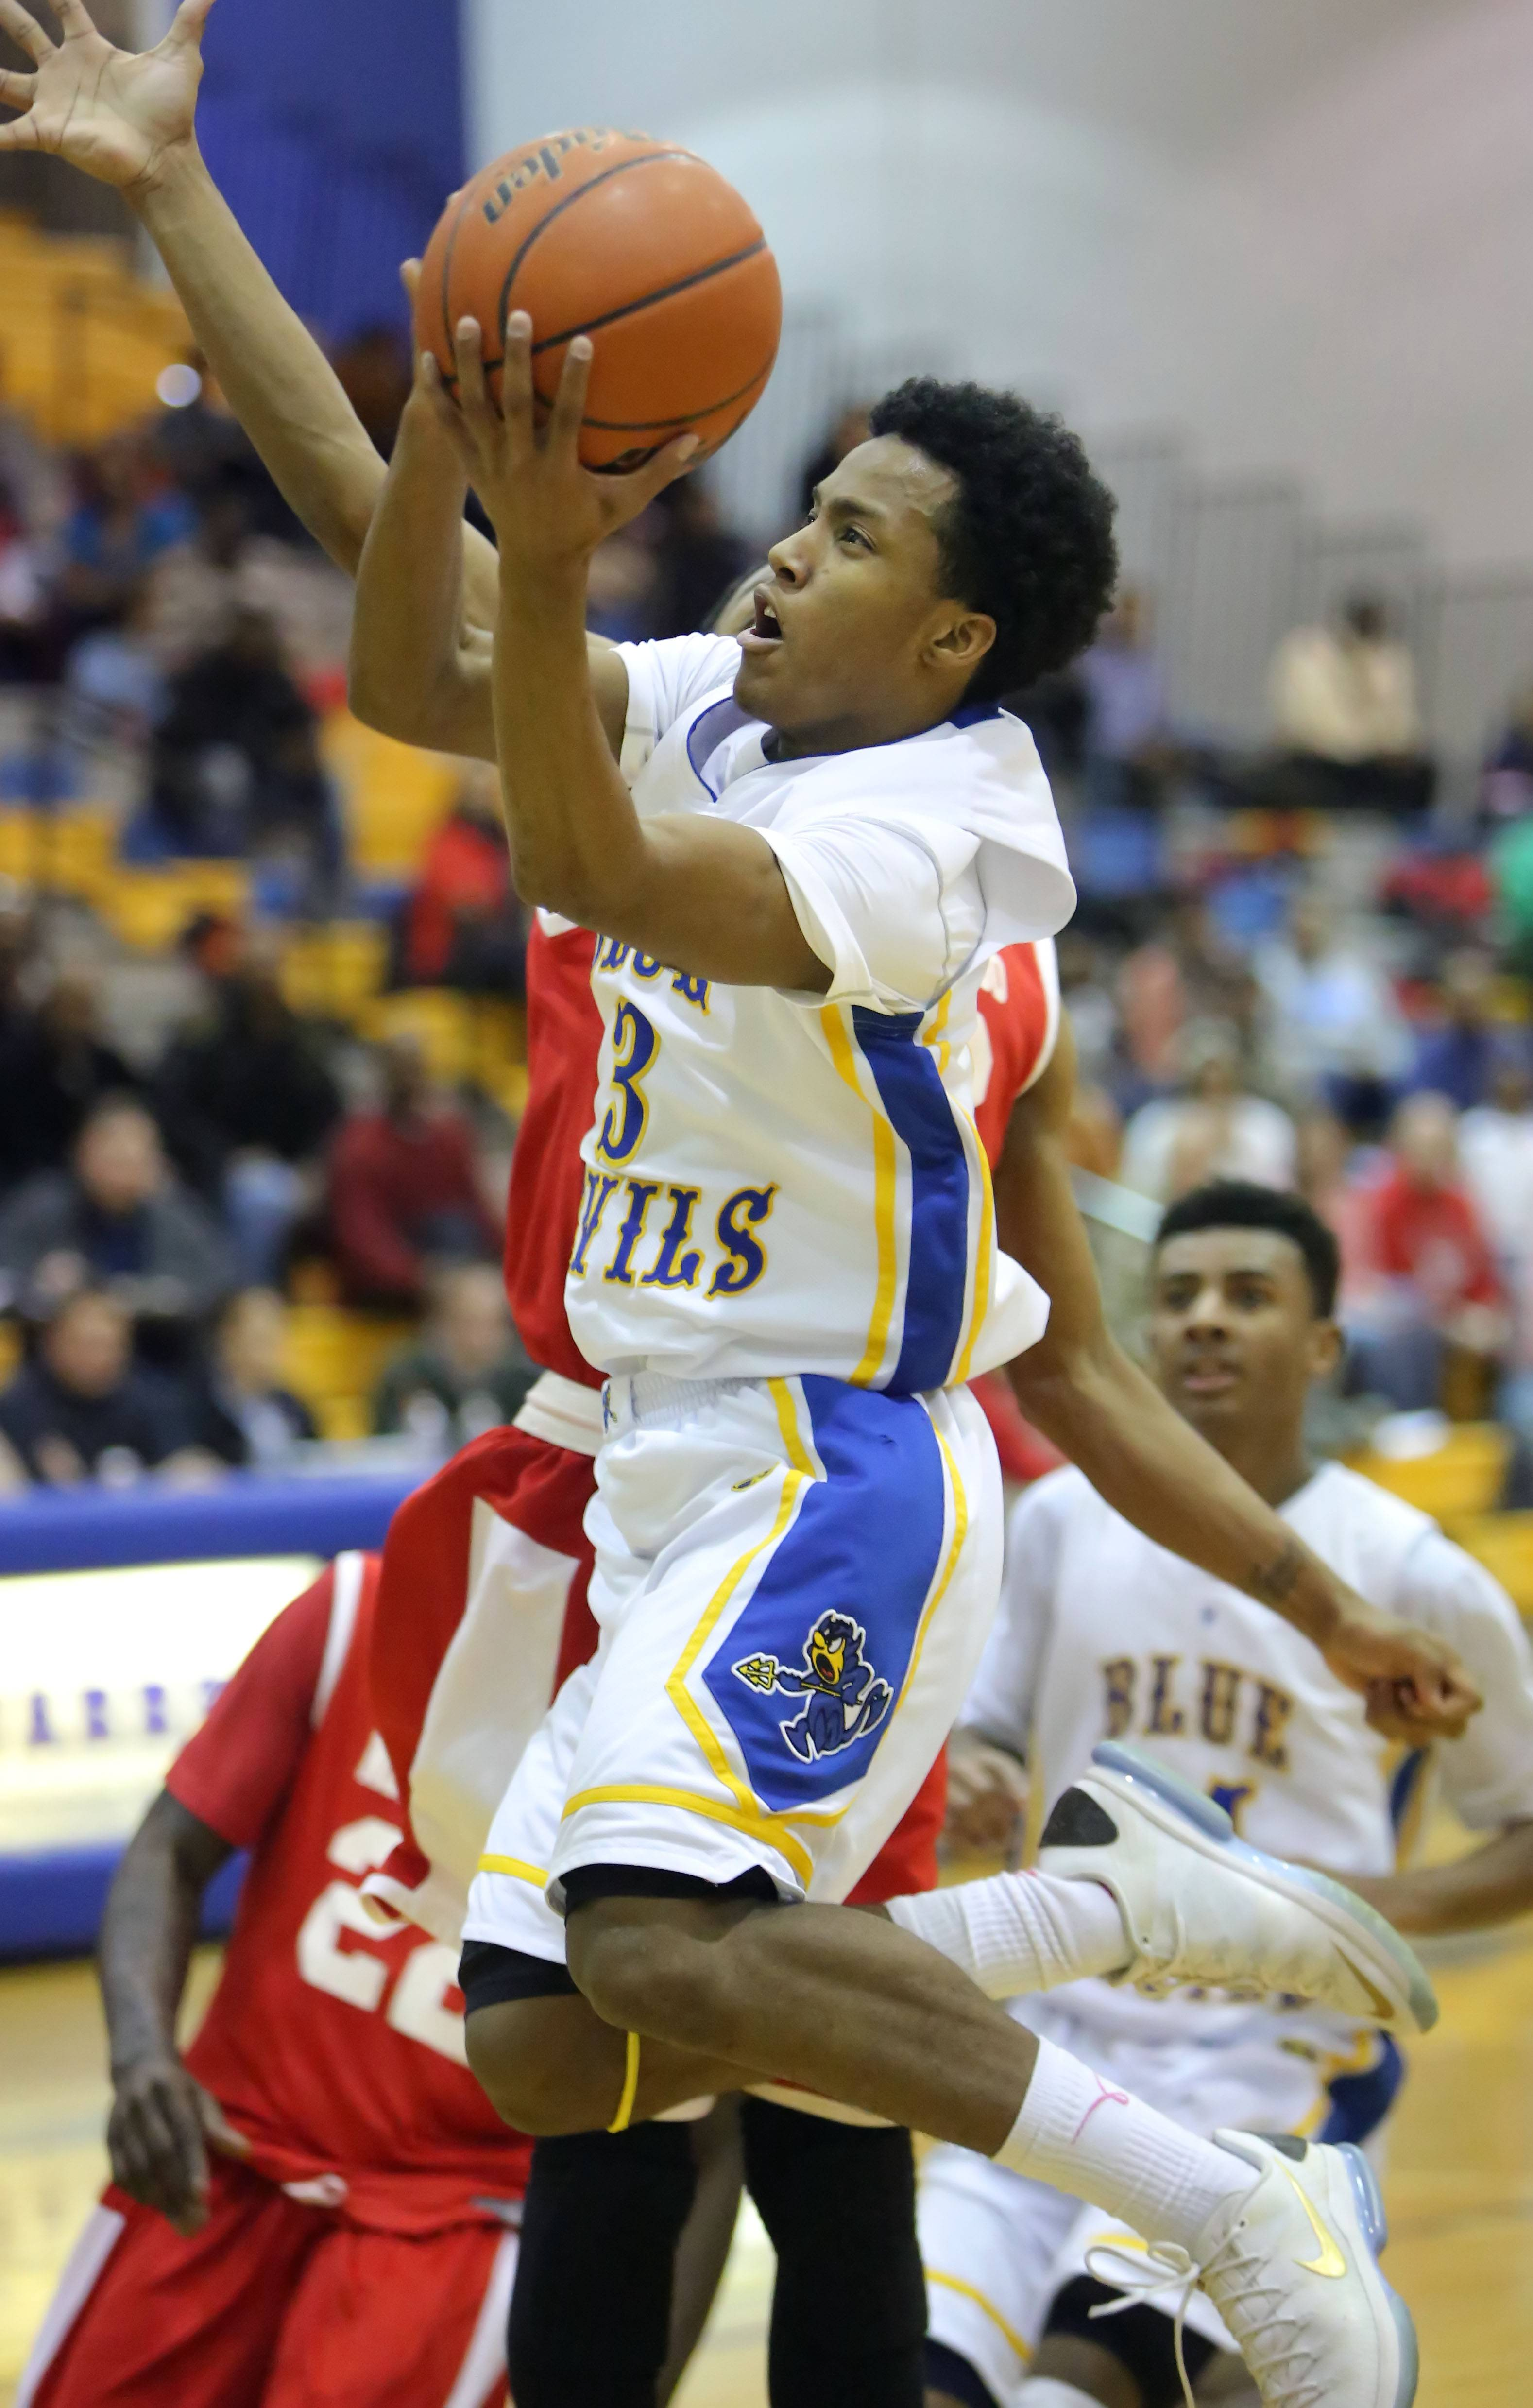 Warren's Eric Gillespie drives to the hoop during the Blue Devil's game against North Chicago on Tuesday night.